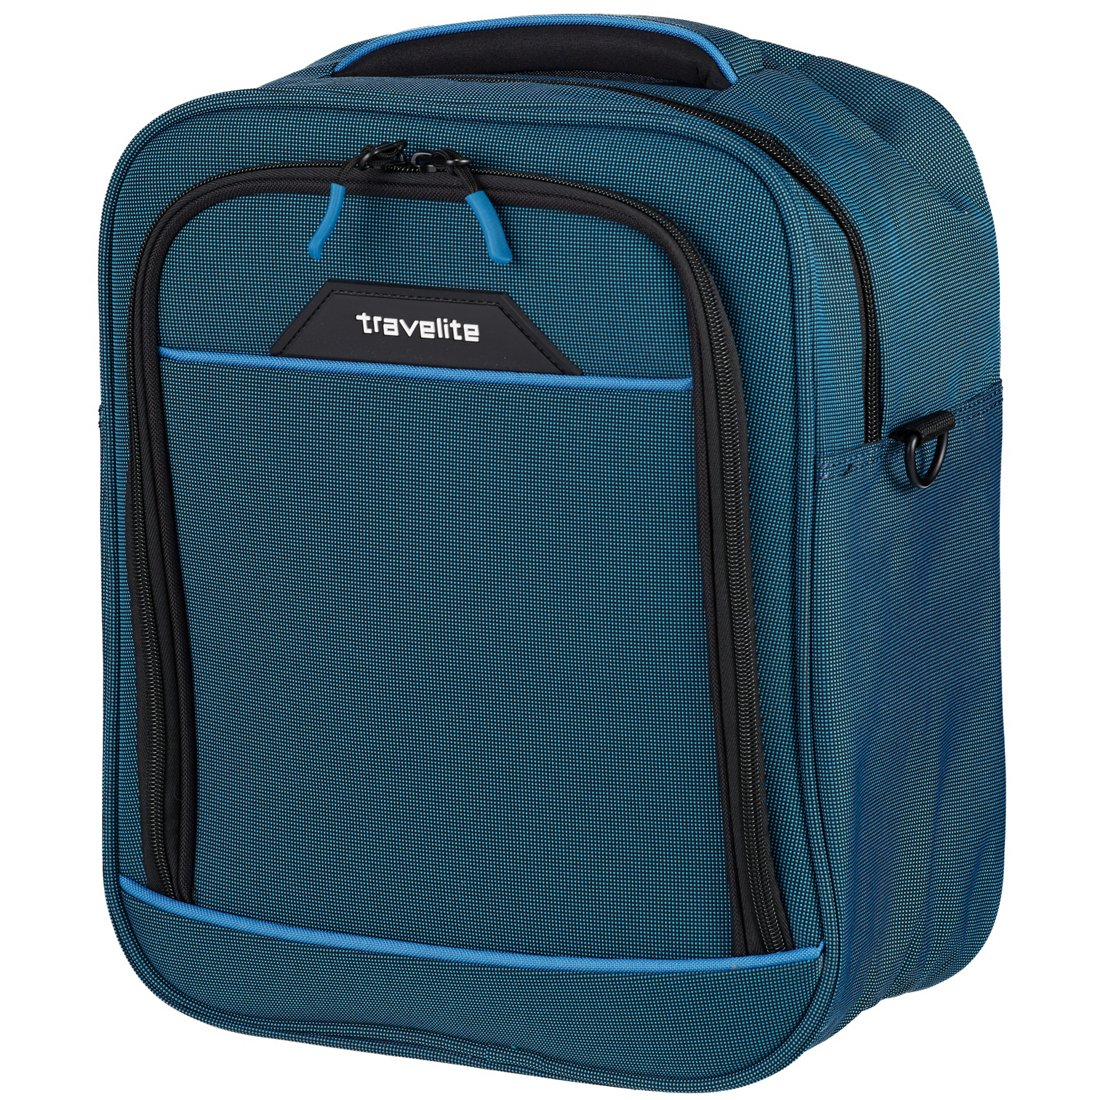 87504 Travelite Derby Bordtasche 35 Cm Reisekoffer & Trolleys